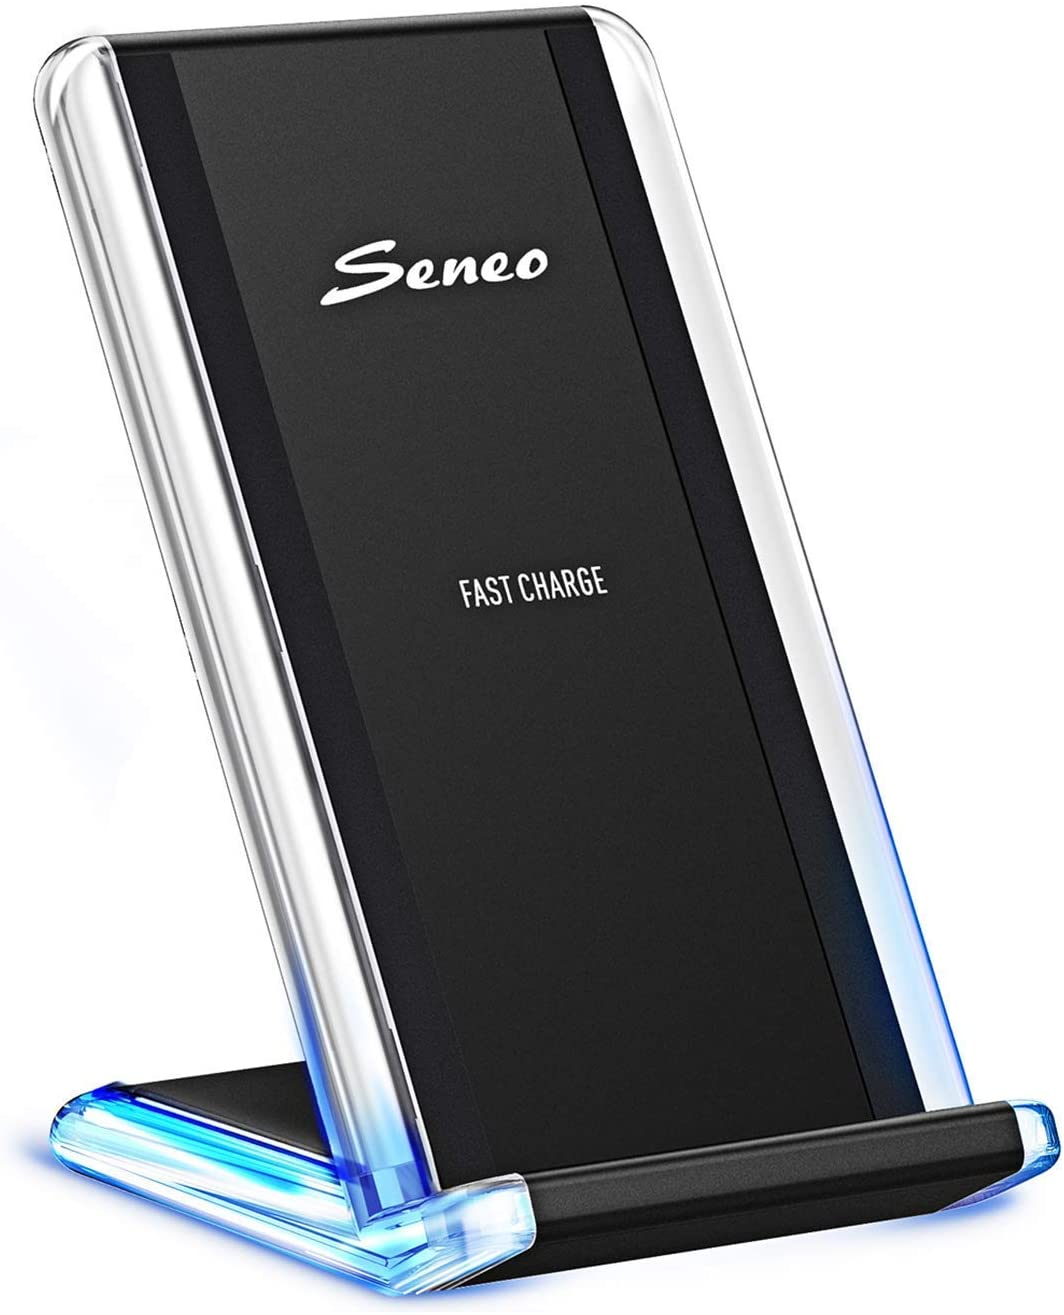 Wireless Charger, Seneo 7.5W Wireless Charger Compatible iPhone 11/Pro Max/XR/XS Max/XS/X/8/8P, 10W for Galaxy S10/S9/S8/Note 10/Note 9/Note 8 (No AC Adapter)